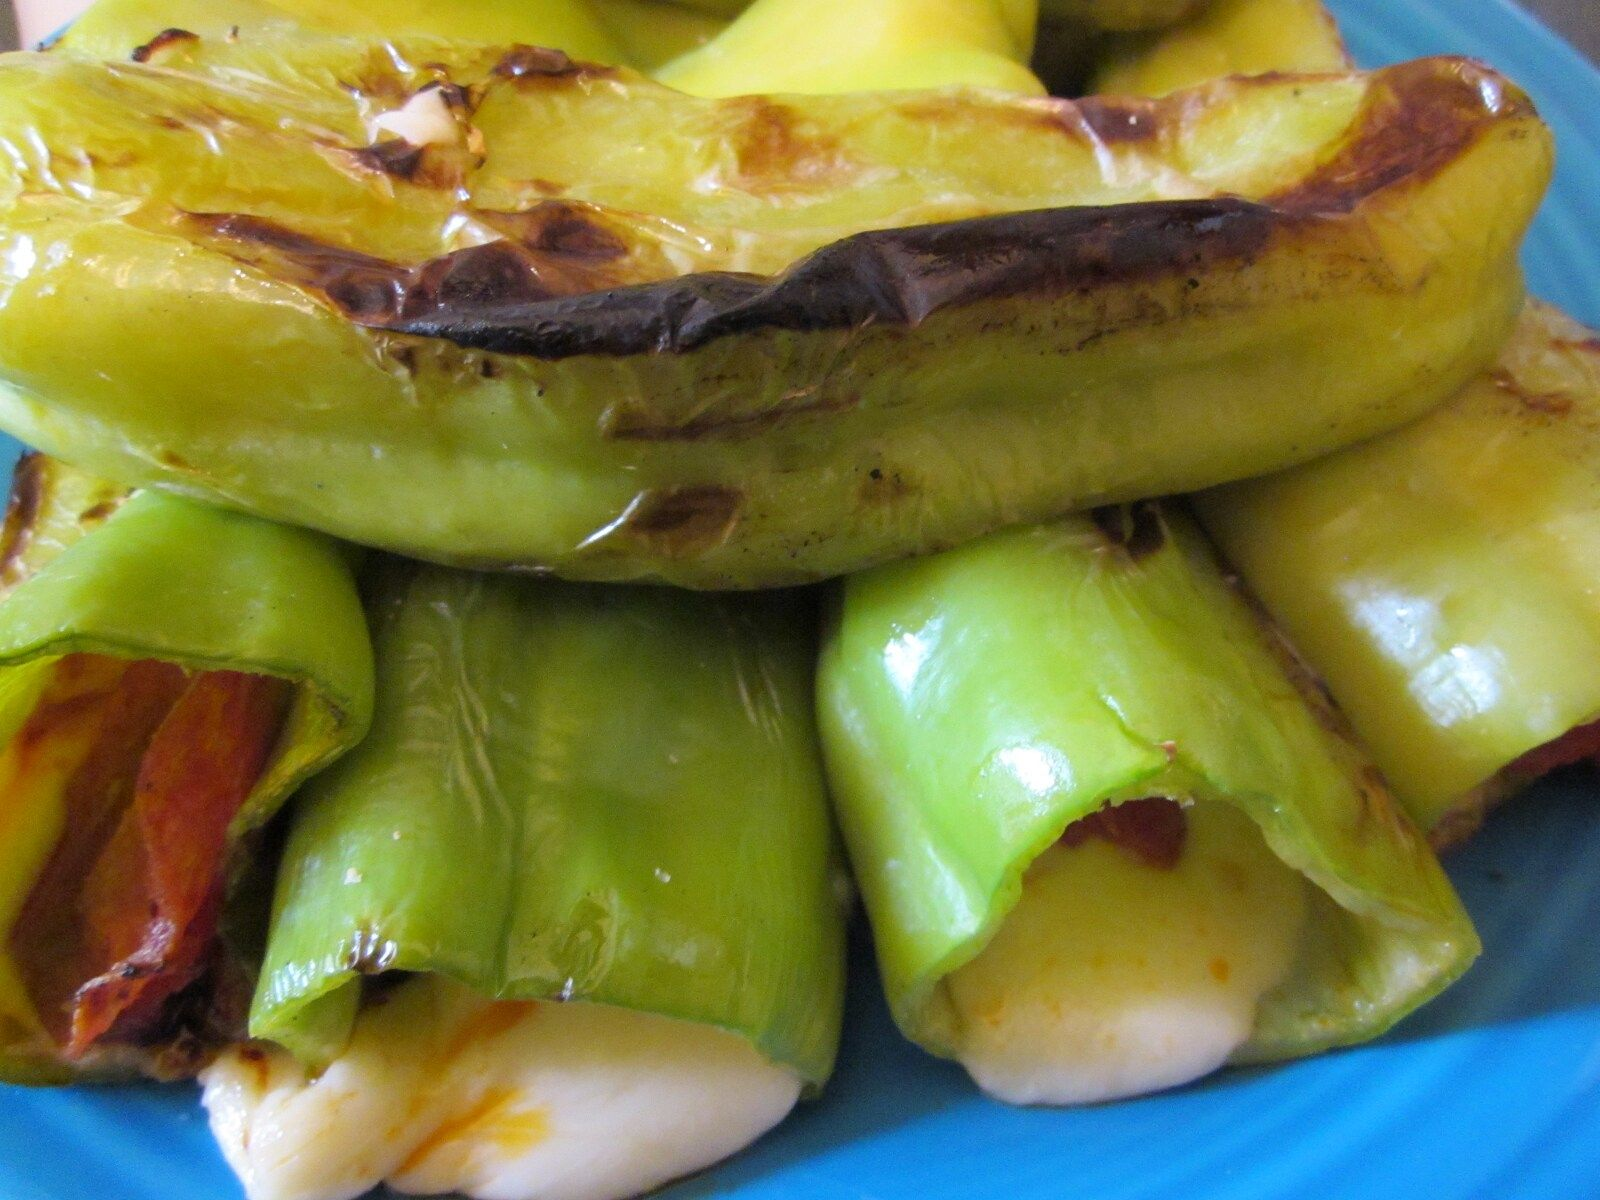 Stuffed And Grilled Cubanelle Peppers Stuffed Peppers Fresh Produce Recipes Cubanelle Pepper